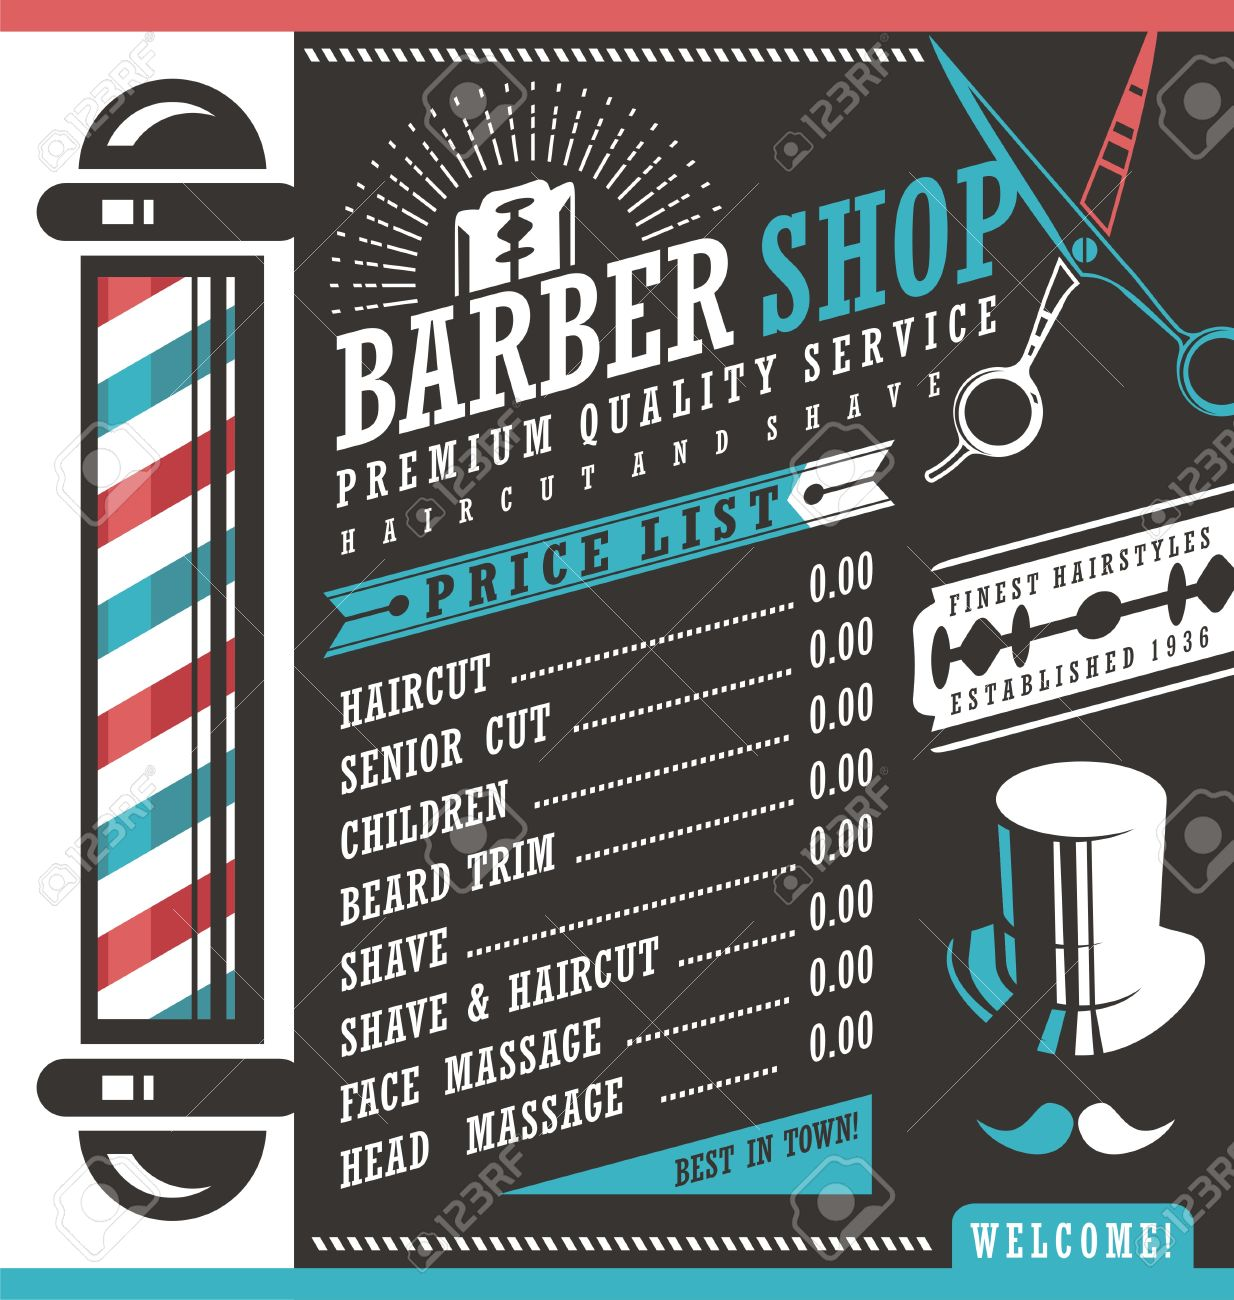 barber shop vector price list template stock vector 53827526